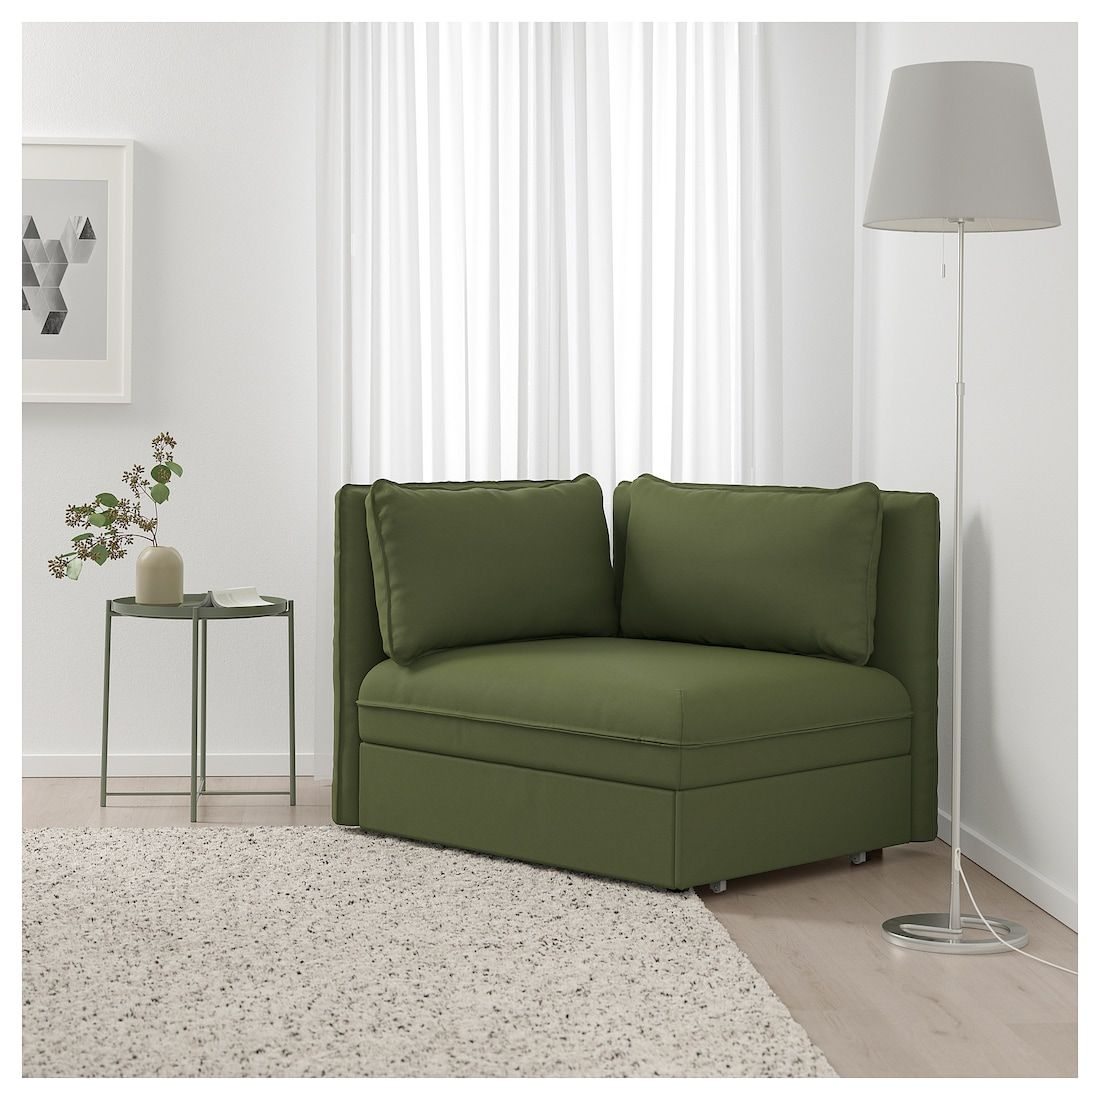 Vallentuna Sofa Bed Module With Backrests Ramna Olive Green